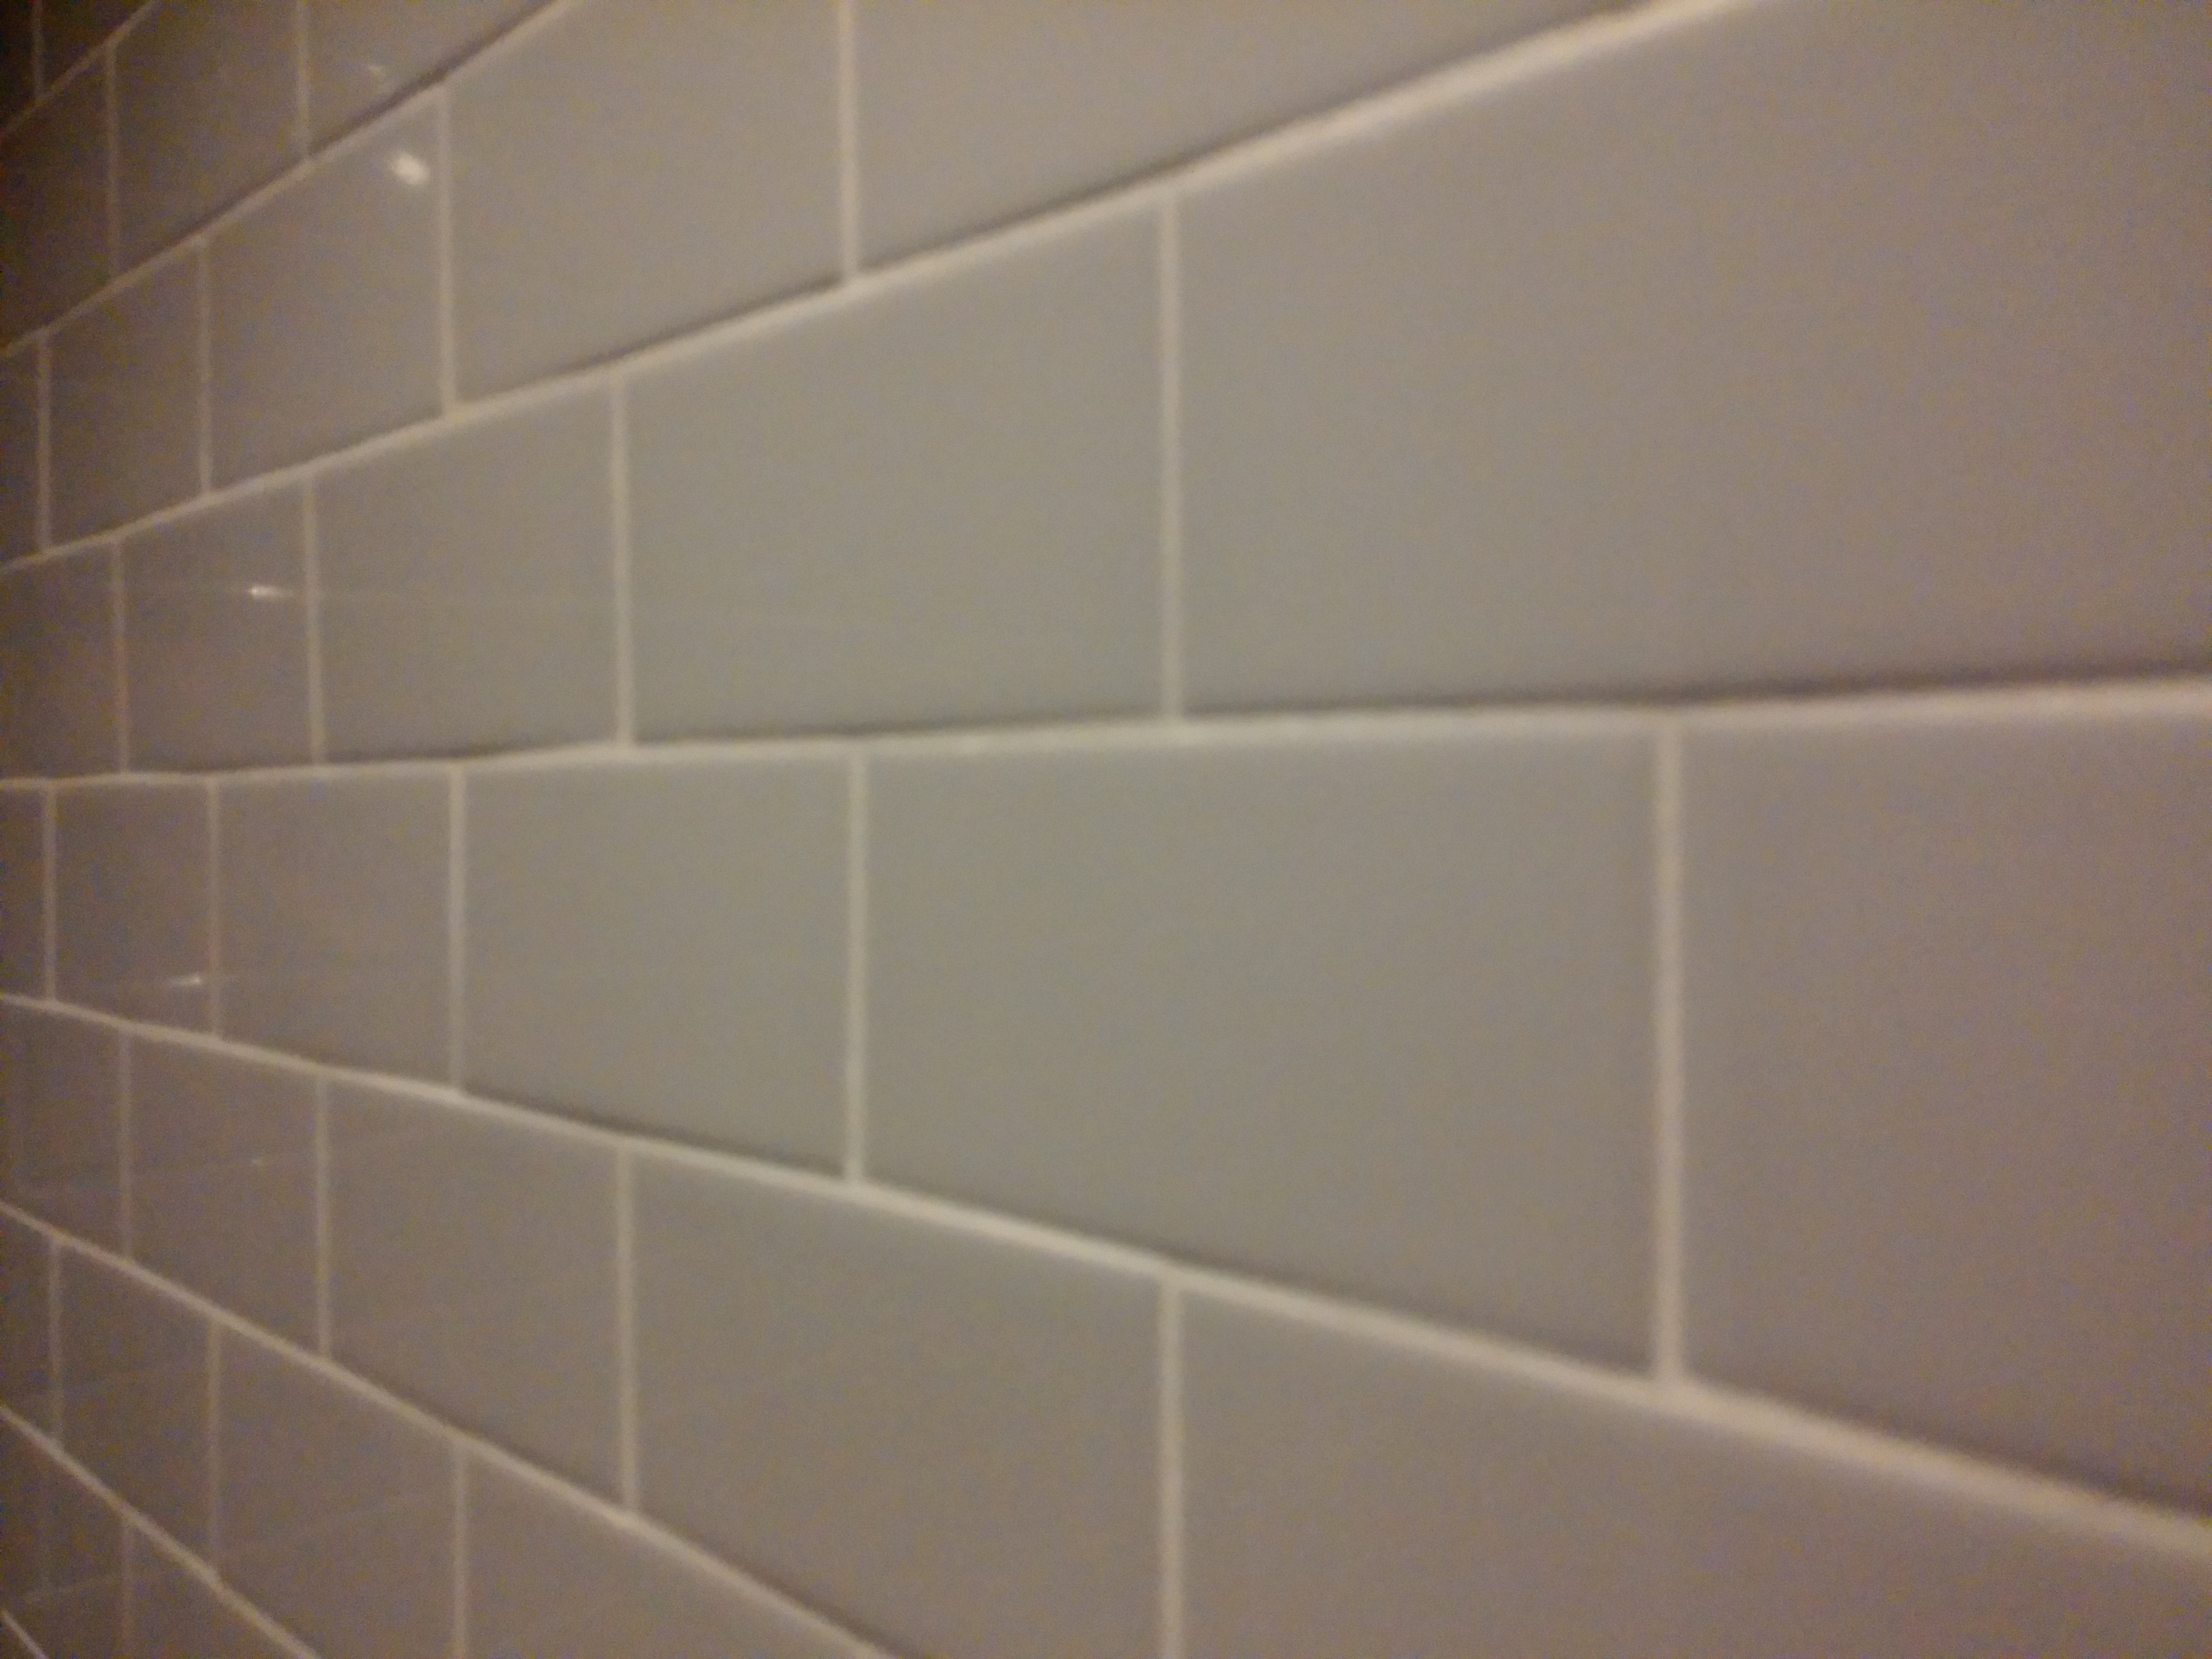 Tile layout ideas and functionality tile design notes for so bathroom design is inherently linked to the tile design and the tile shape and size its arrangement and alignment that is the tile layout has a dailygadgetfo Choice Image